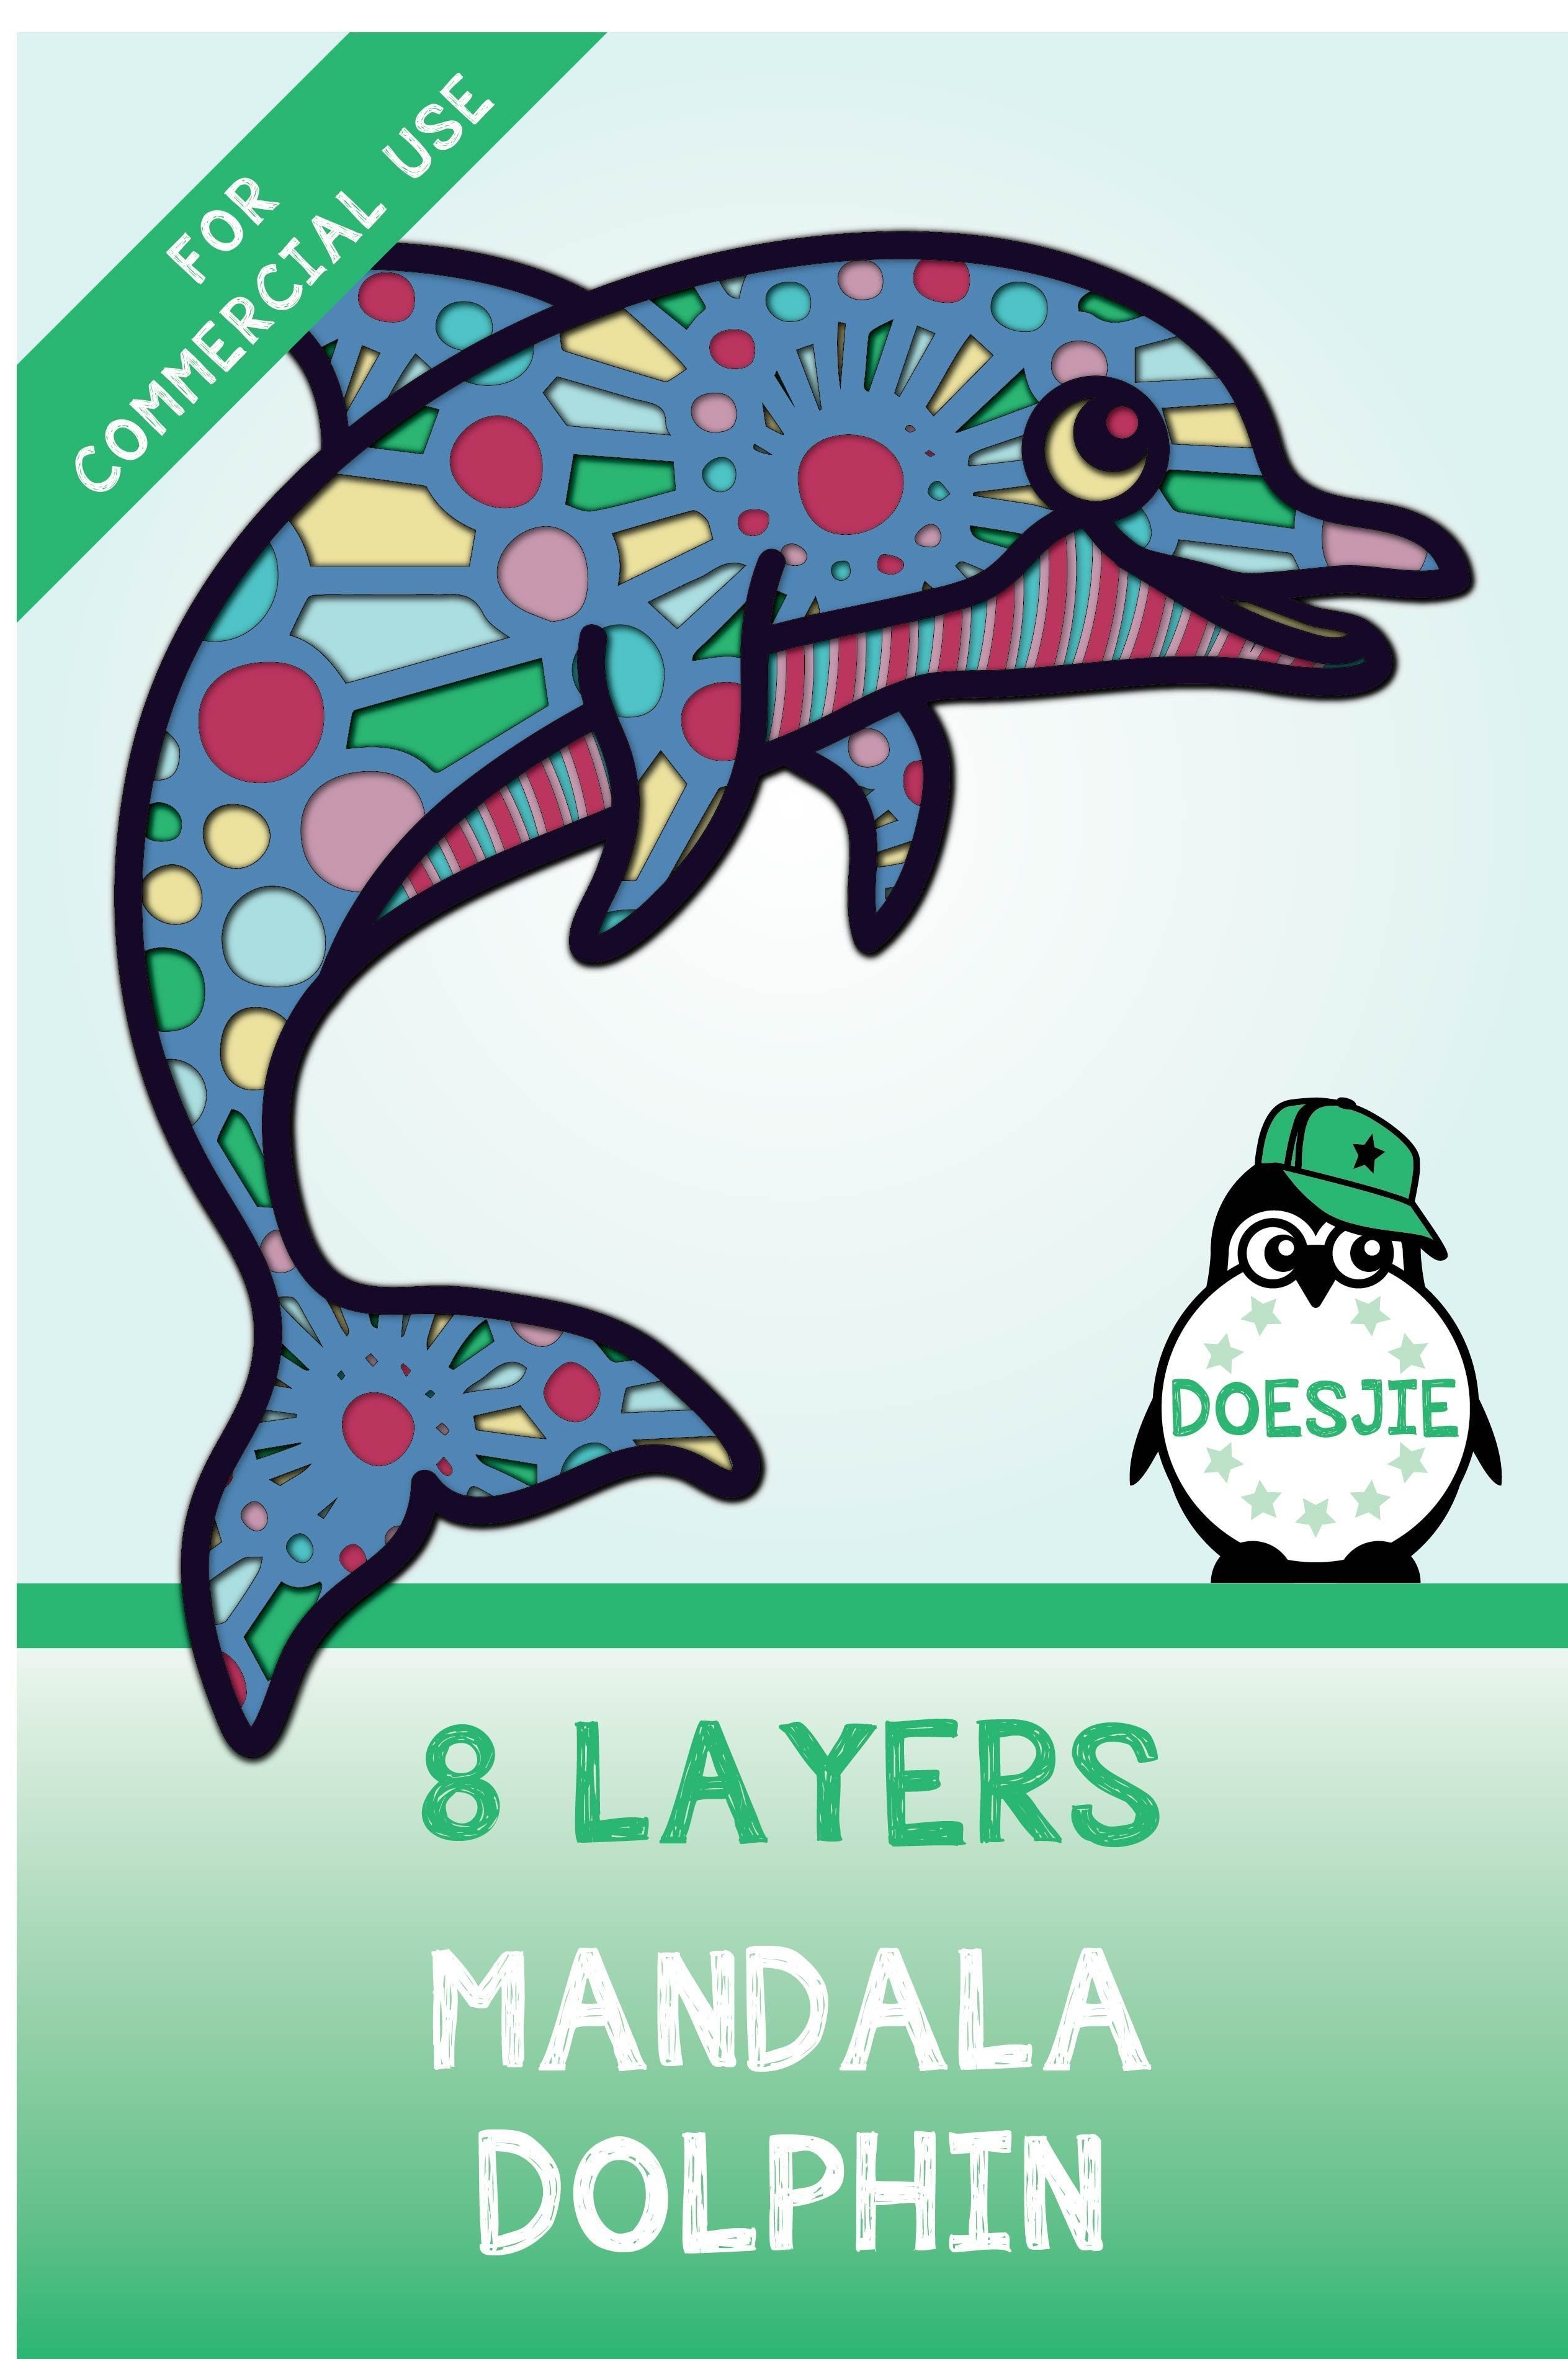 Download 3D Dolphin multi layer mandala SVG in 2020   Vinyl decal ...